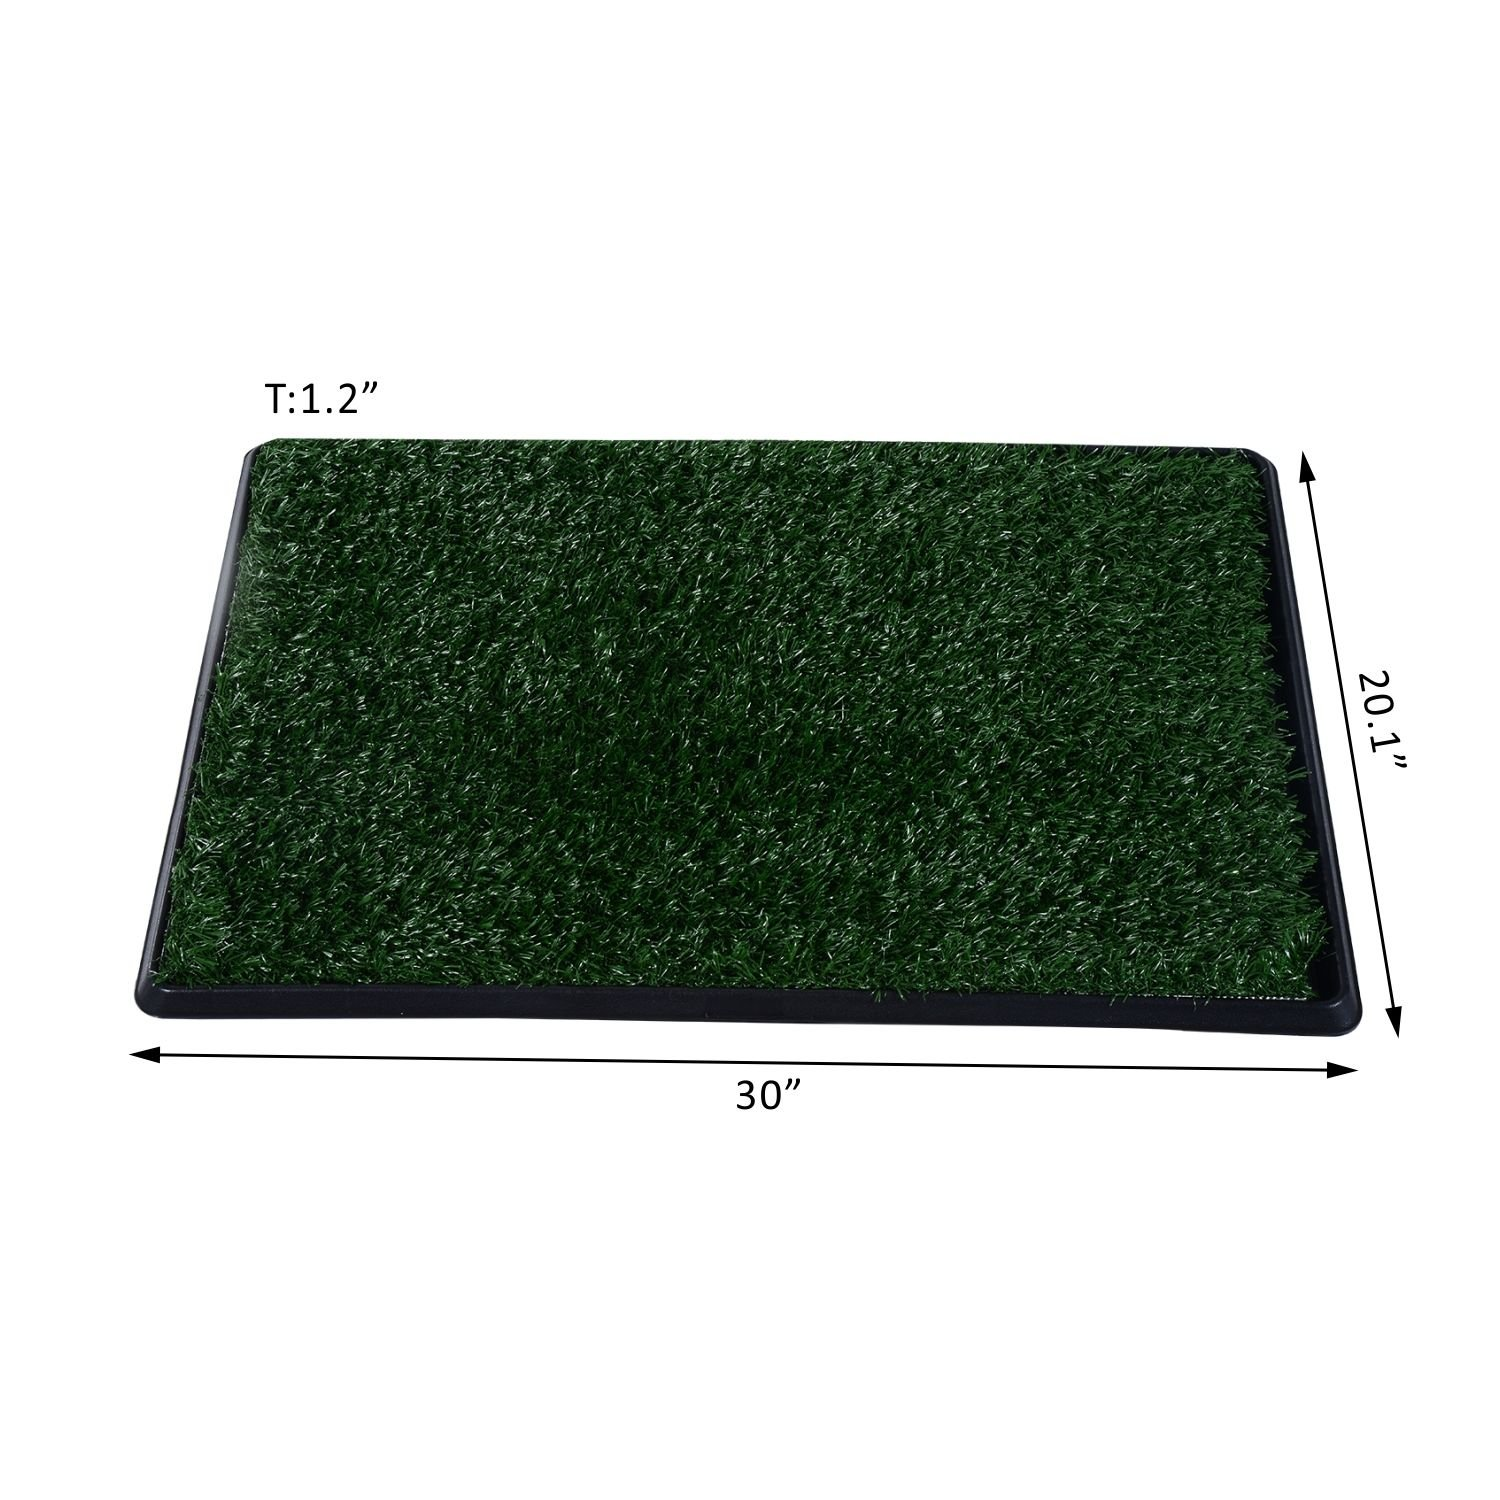 Grass Pad Restroom Potty Training w/Tray Indoor Outdoor New 30'' Large Pet Dog Toilet